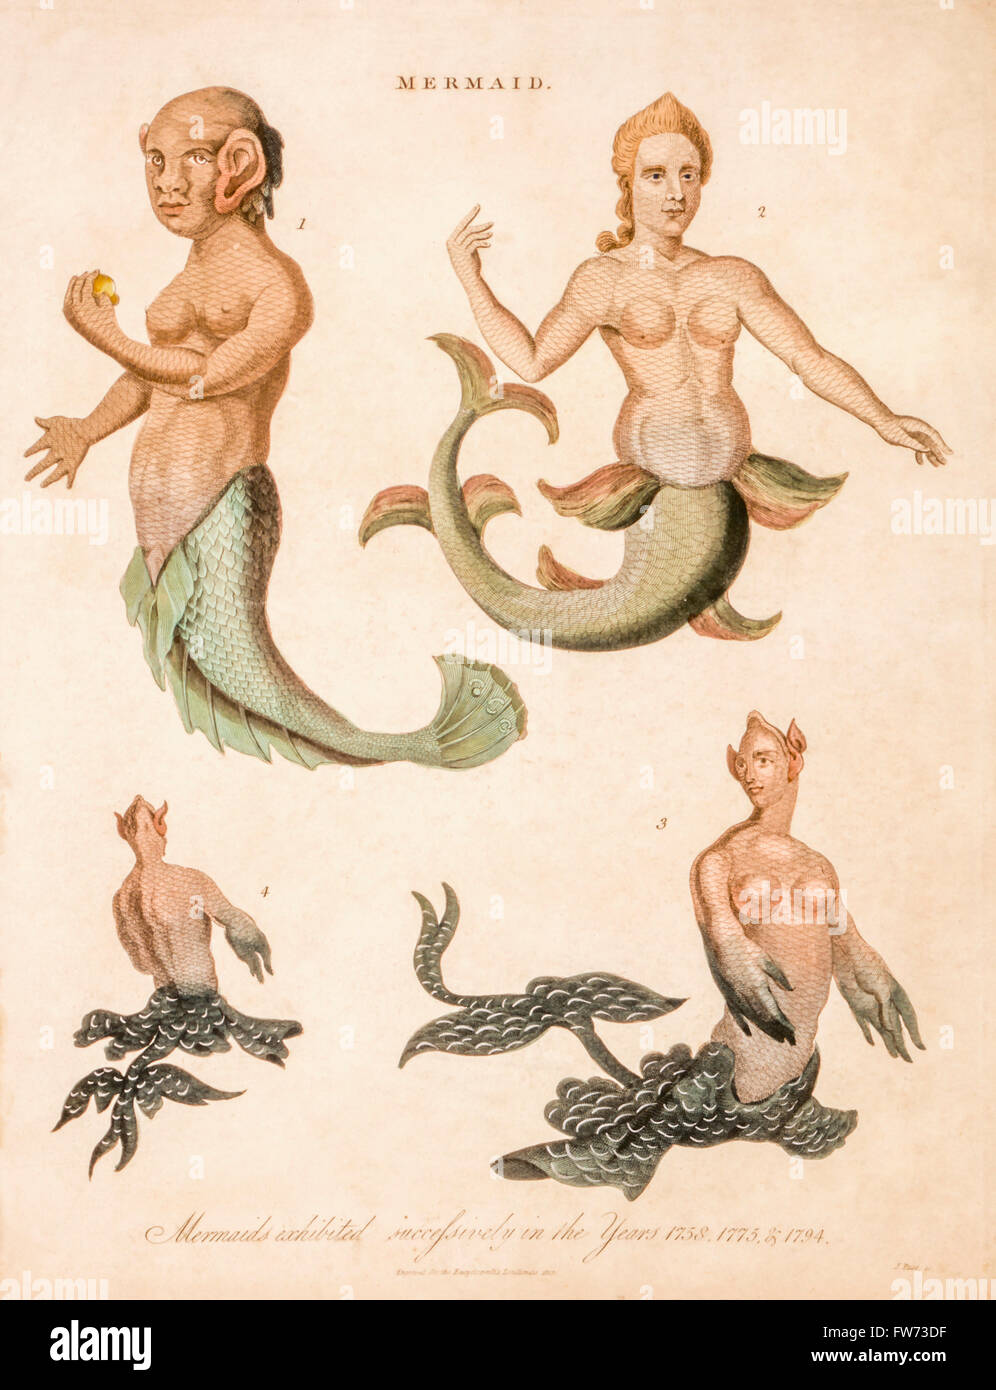 Mermaids, a plate  from Encyclopaedia Londinensis, 1817 - Stock Image